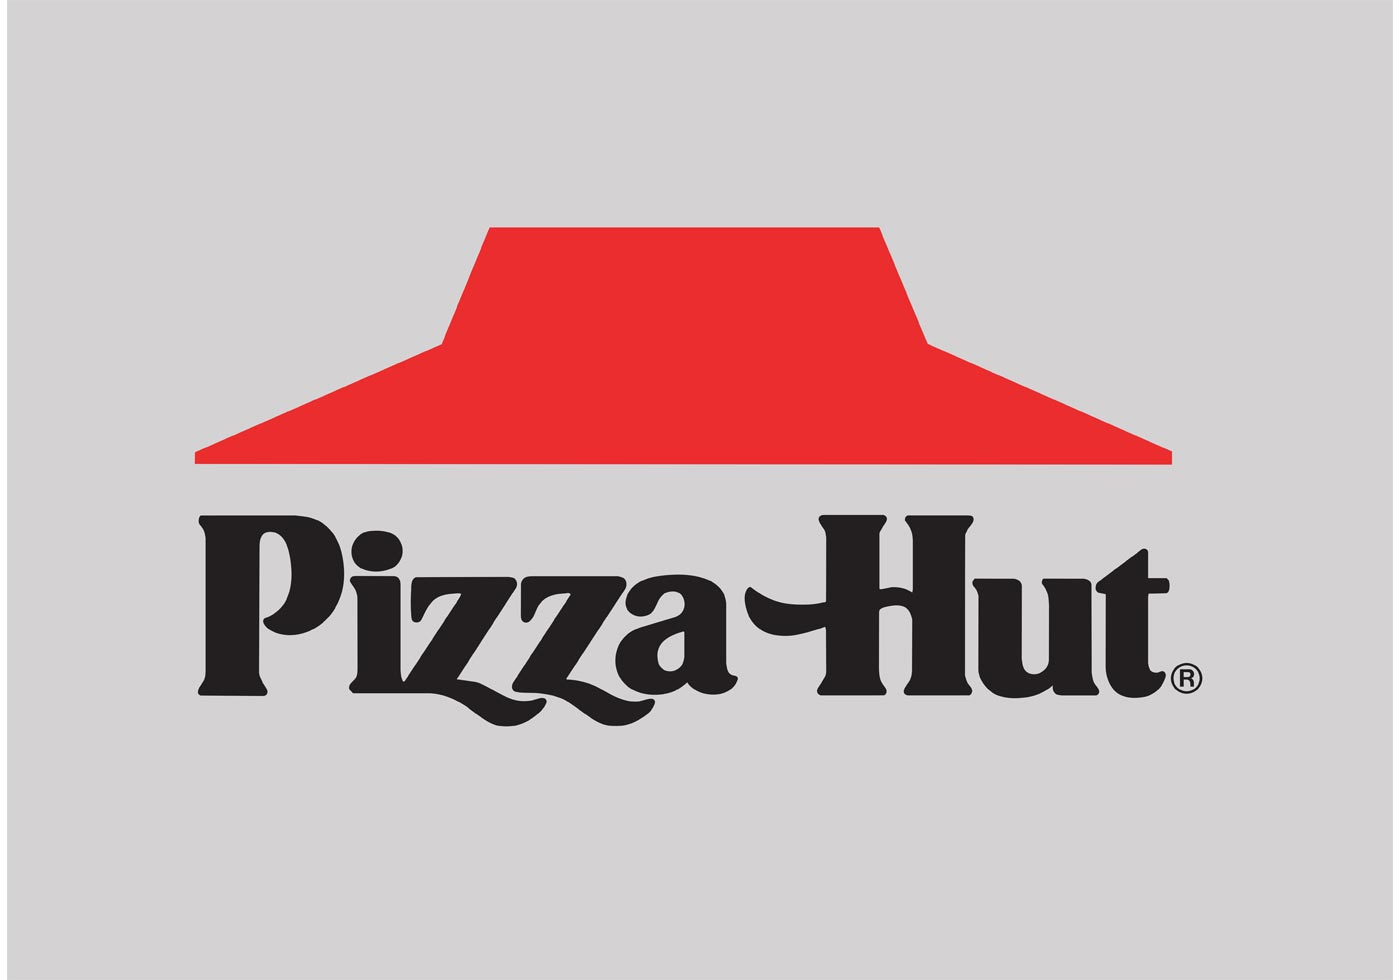 pizza hut logo download free vector art stock graphics